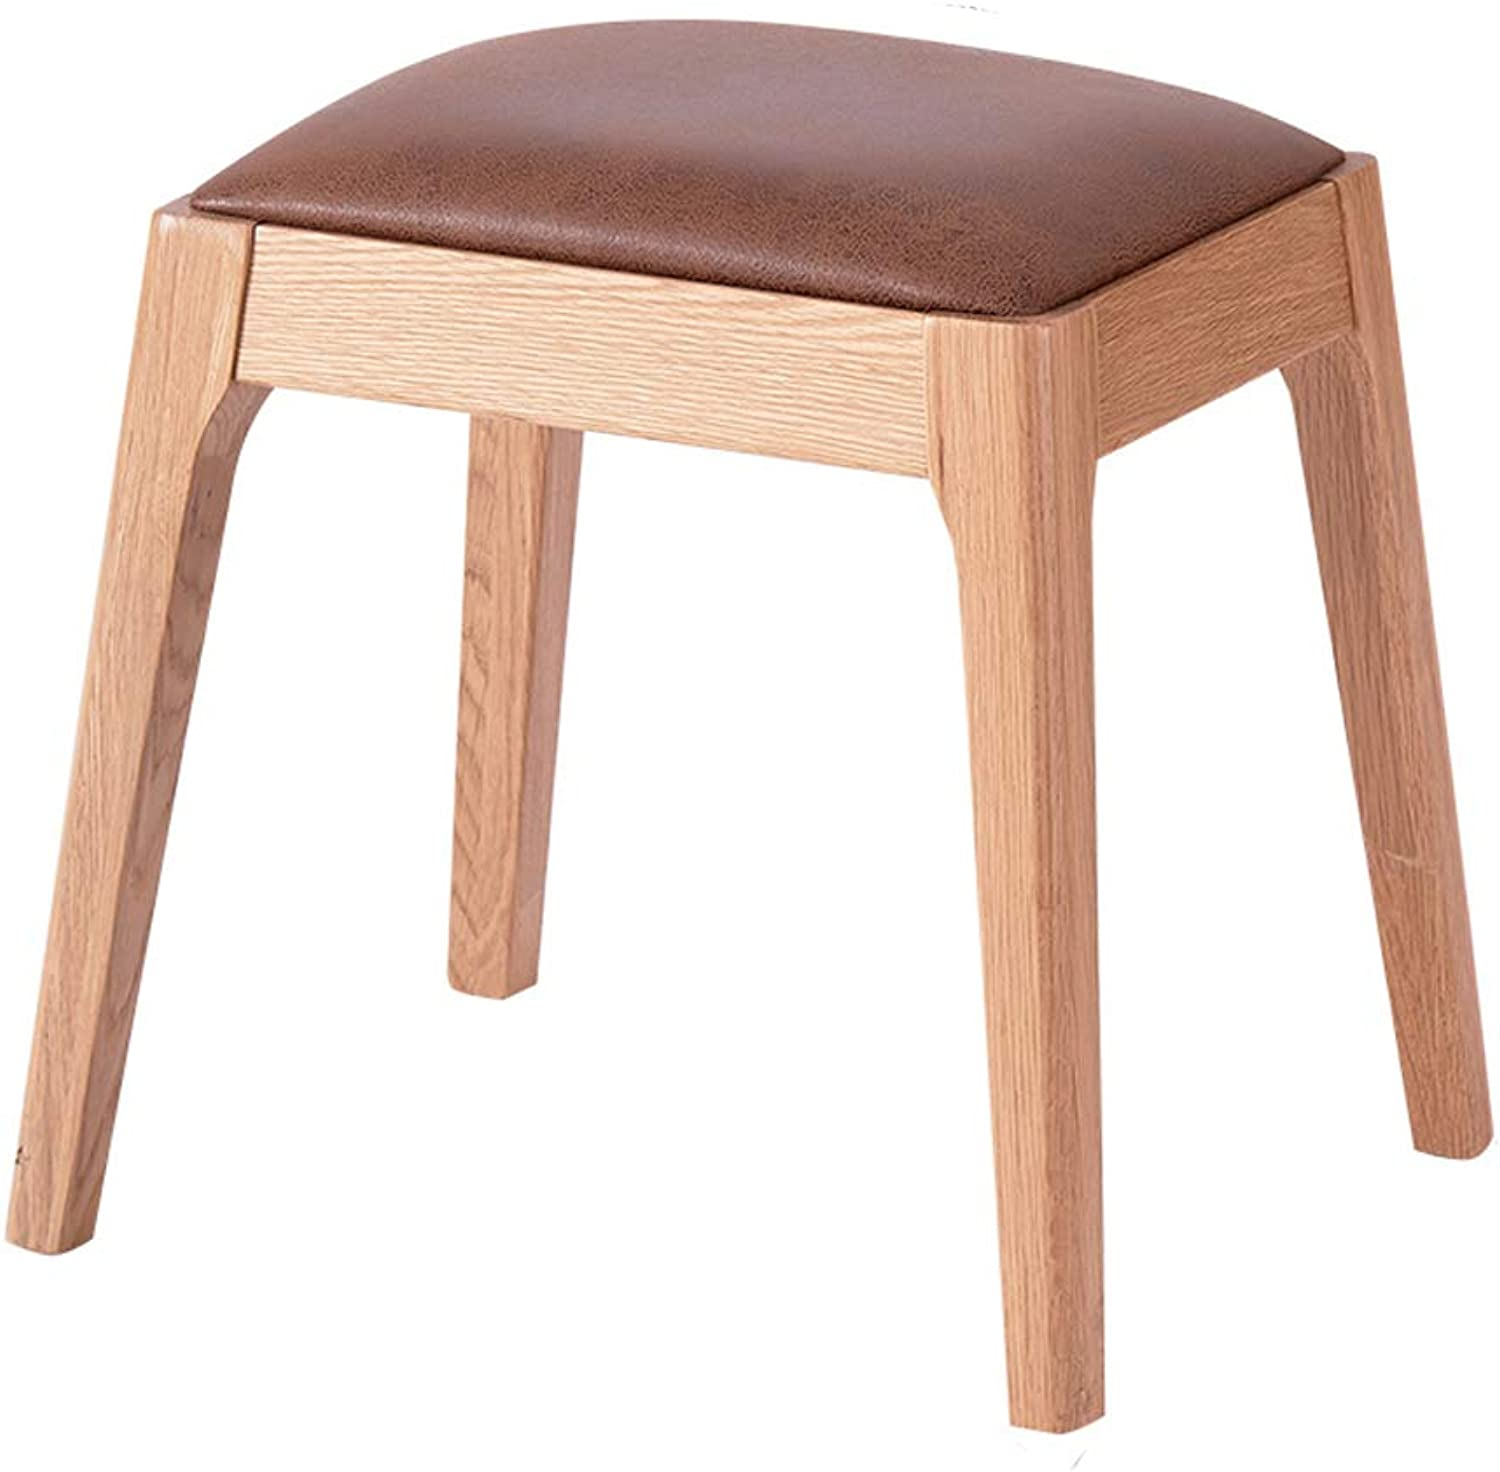 Dressing Stool Makeup Seat Piano Chair Padded Bench Chair,Technology Cloth Solid Wood Legs Upholstered, for Dressing Room Living Room Bedroom,3 colors